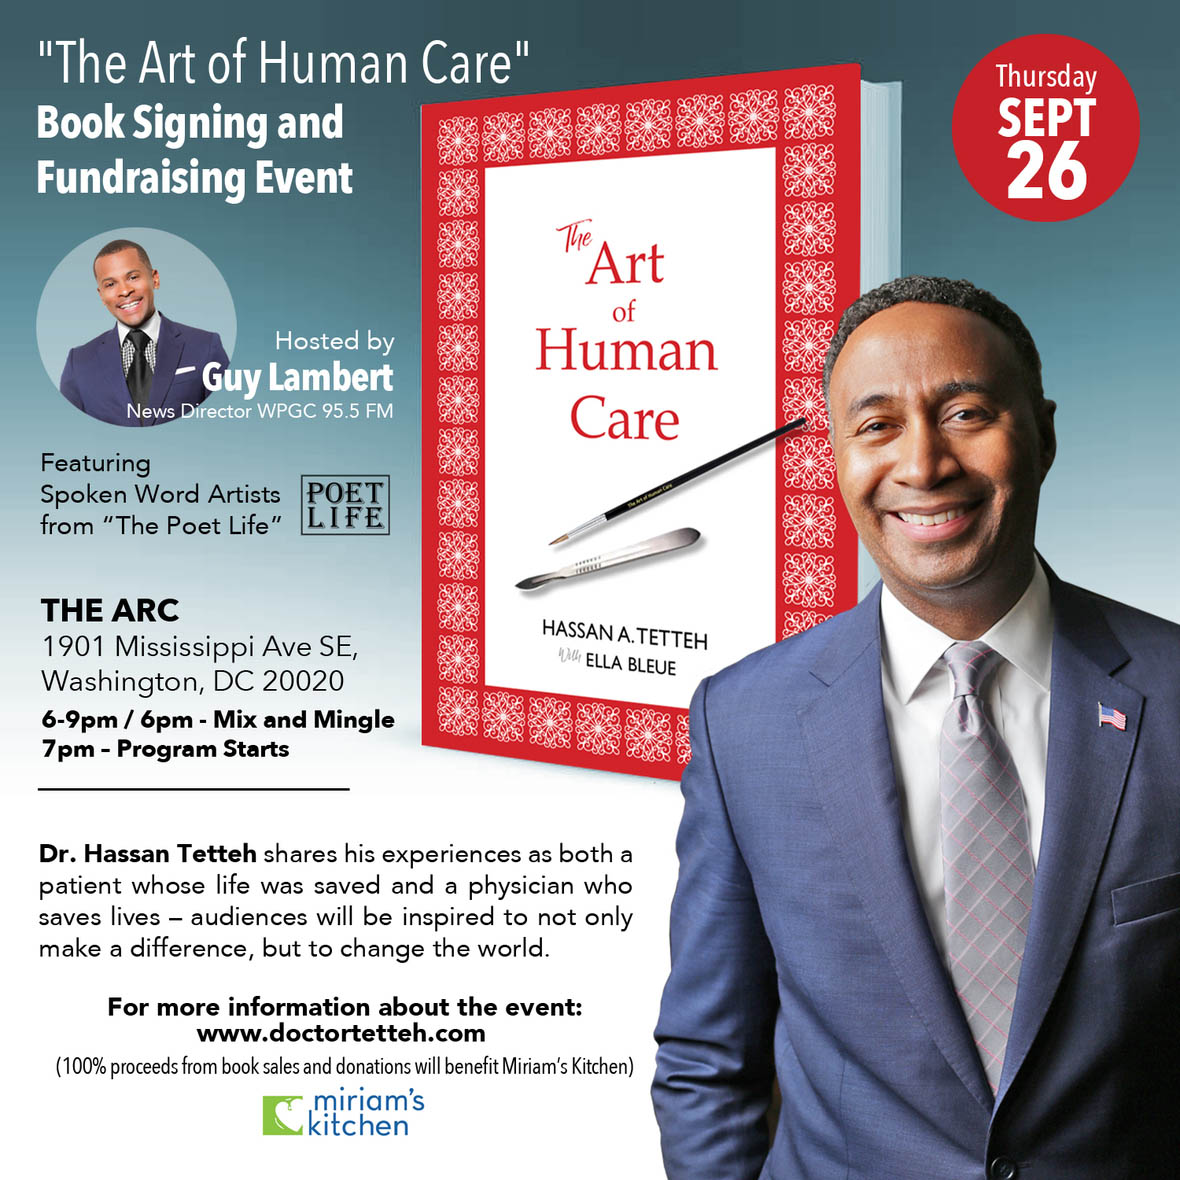 The Art of Human Care Fundraiser flyer